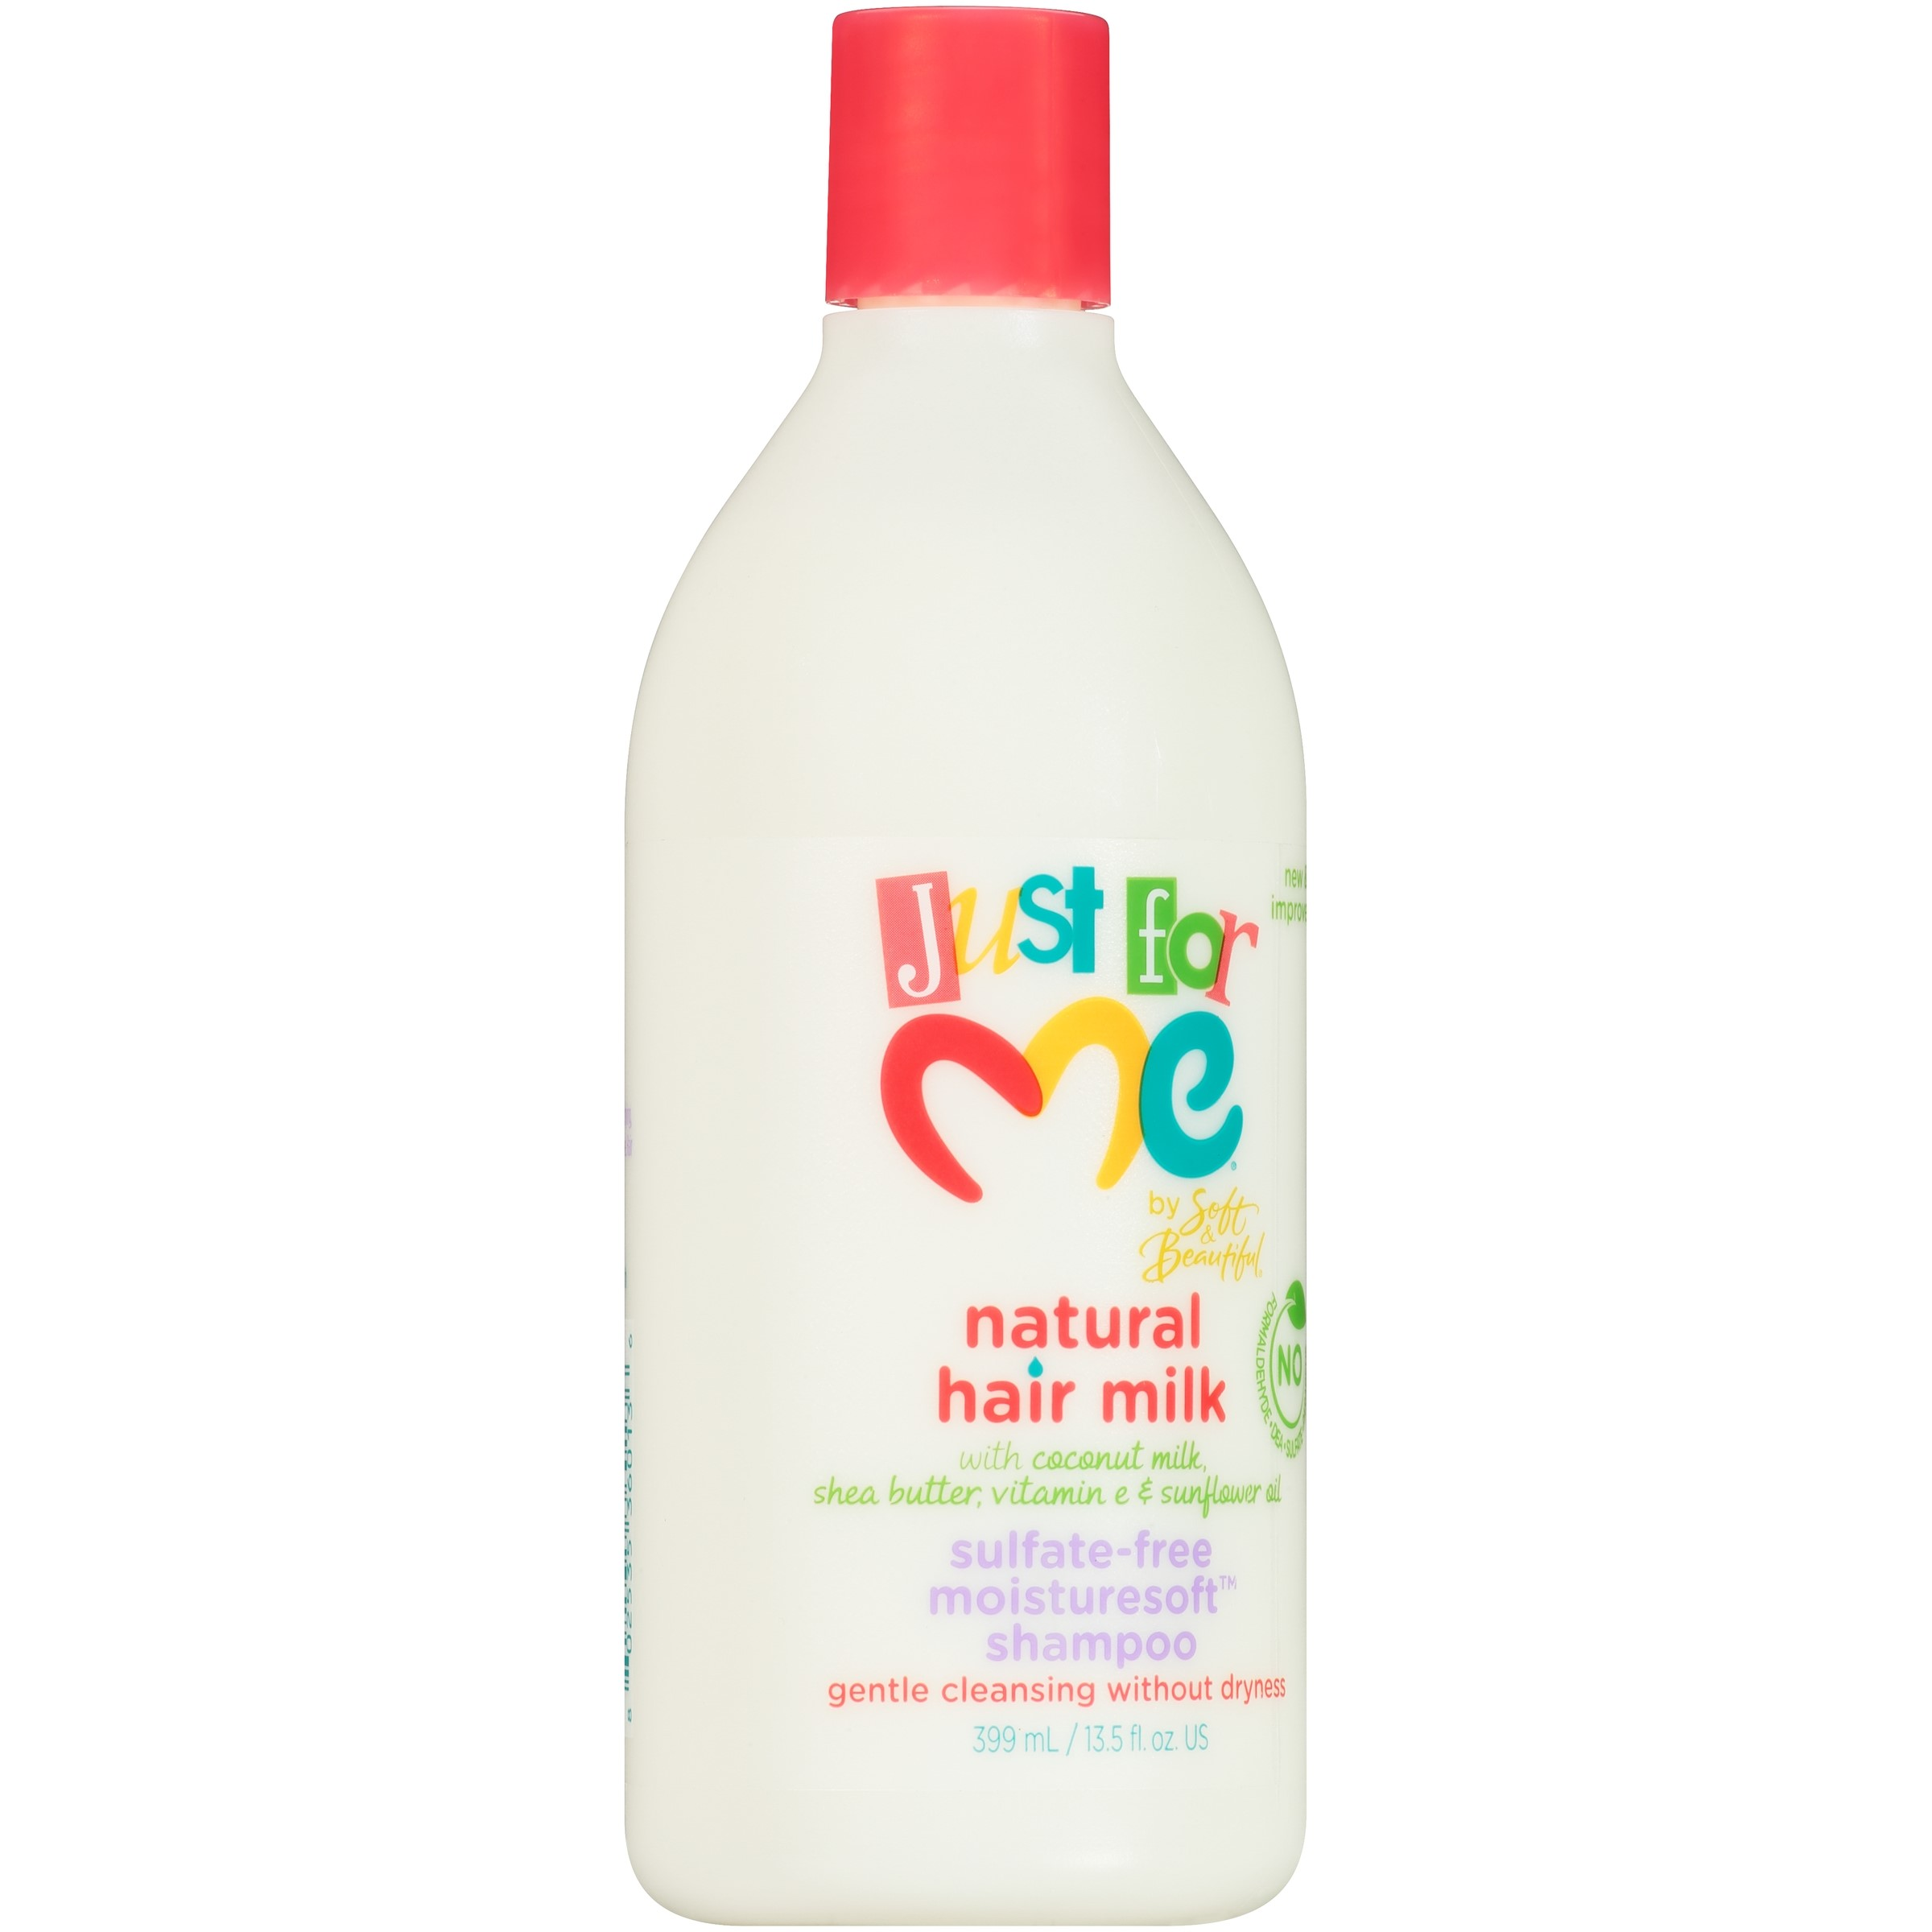 Just for Me Natural Hair Milk Sulfate-Free Moisturesoft Shampoo 13.5 fl. oz. Bottle by Just For Me